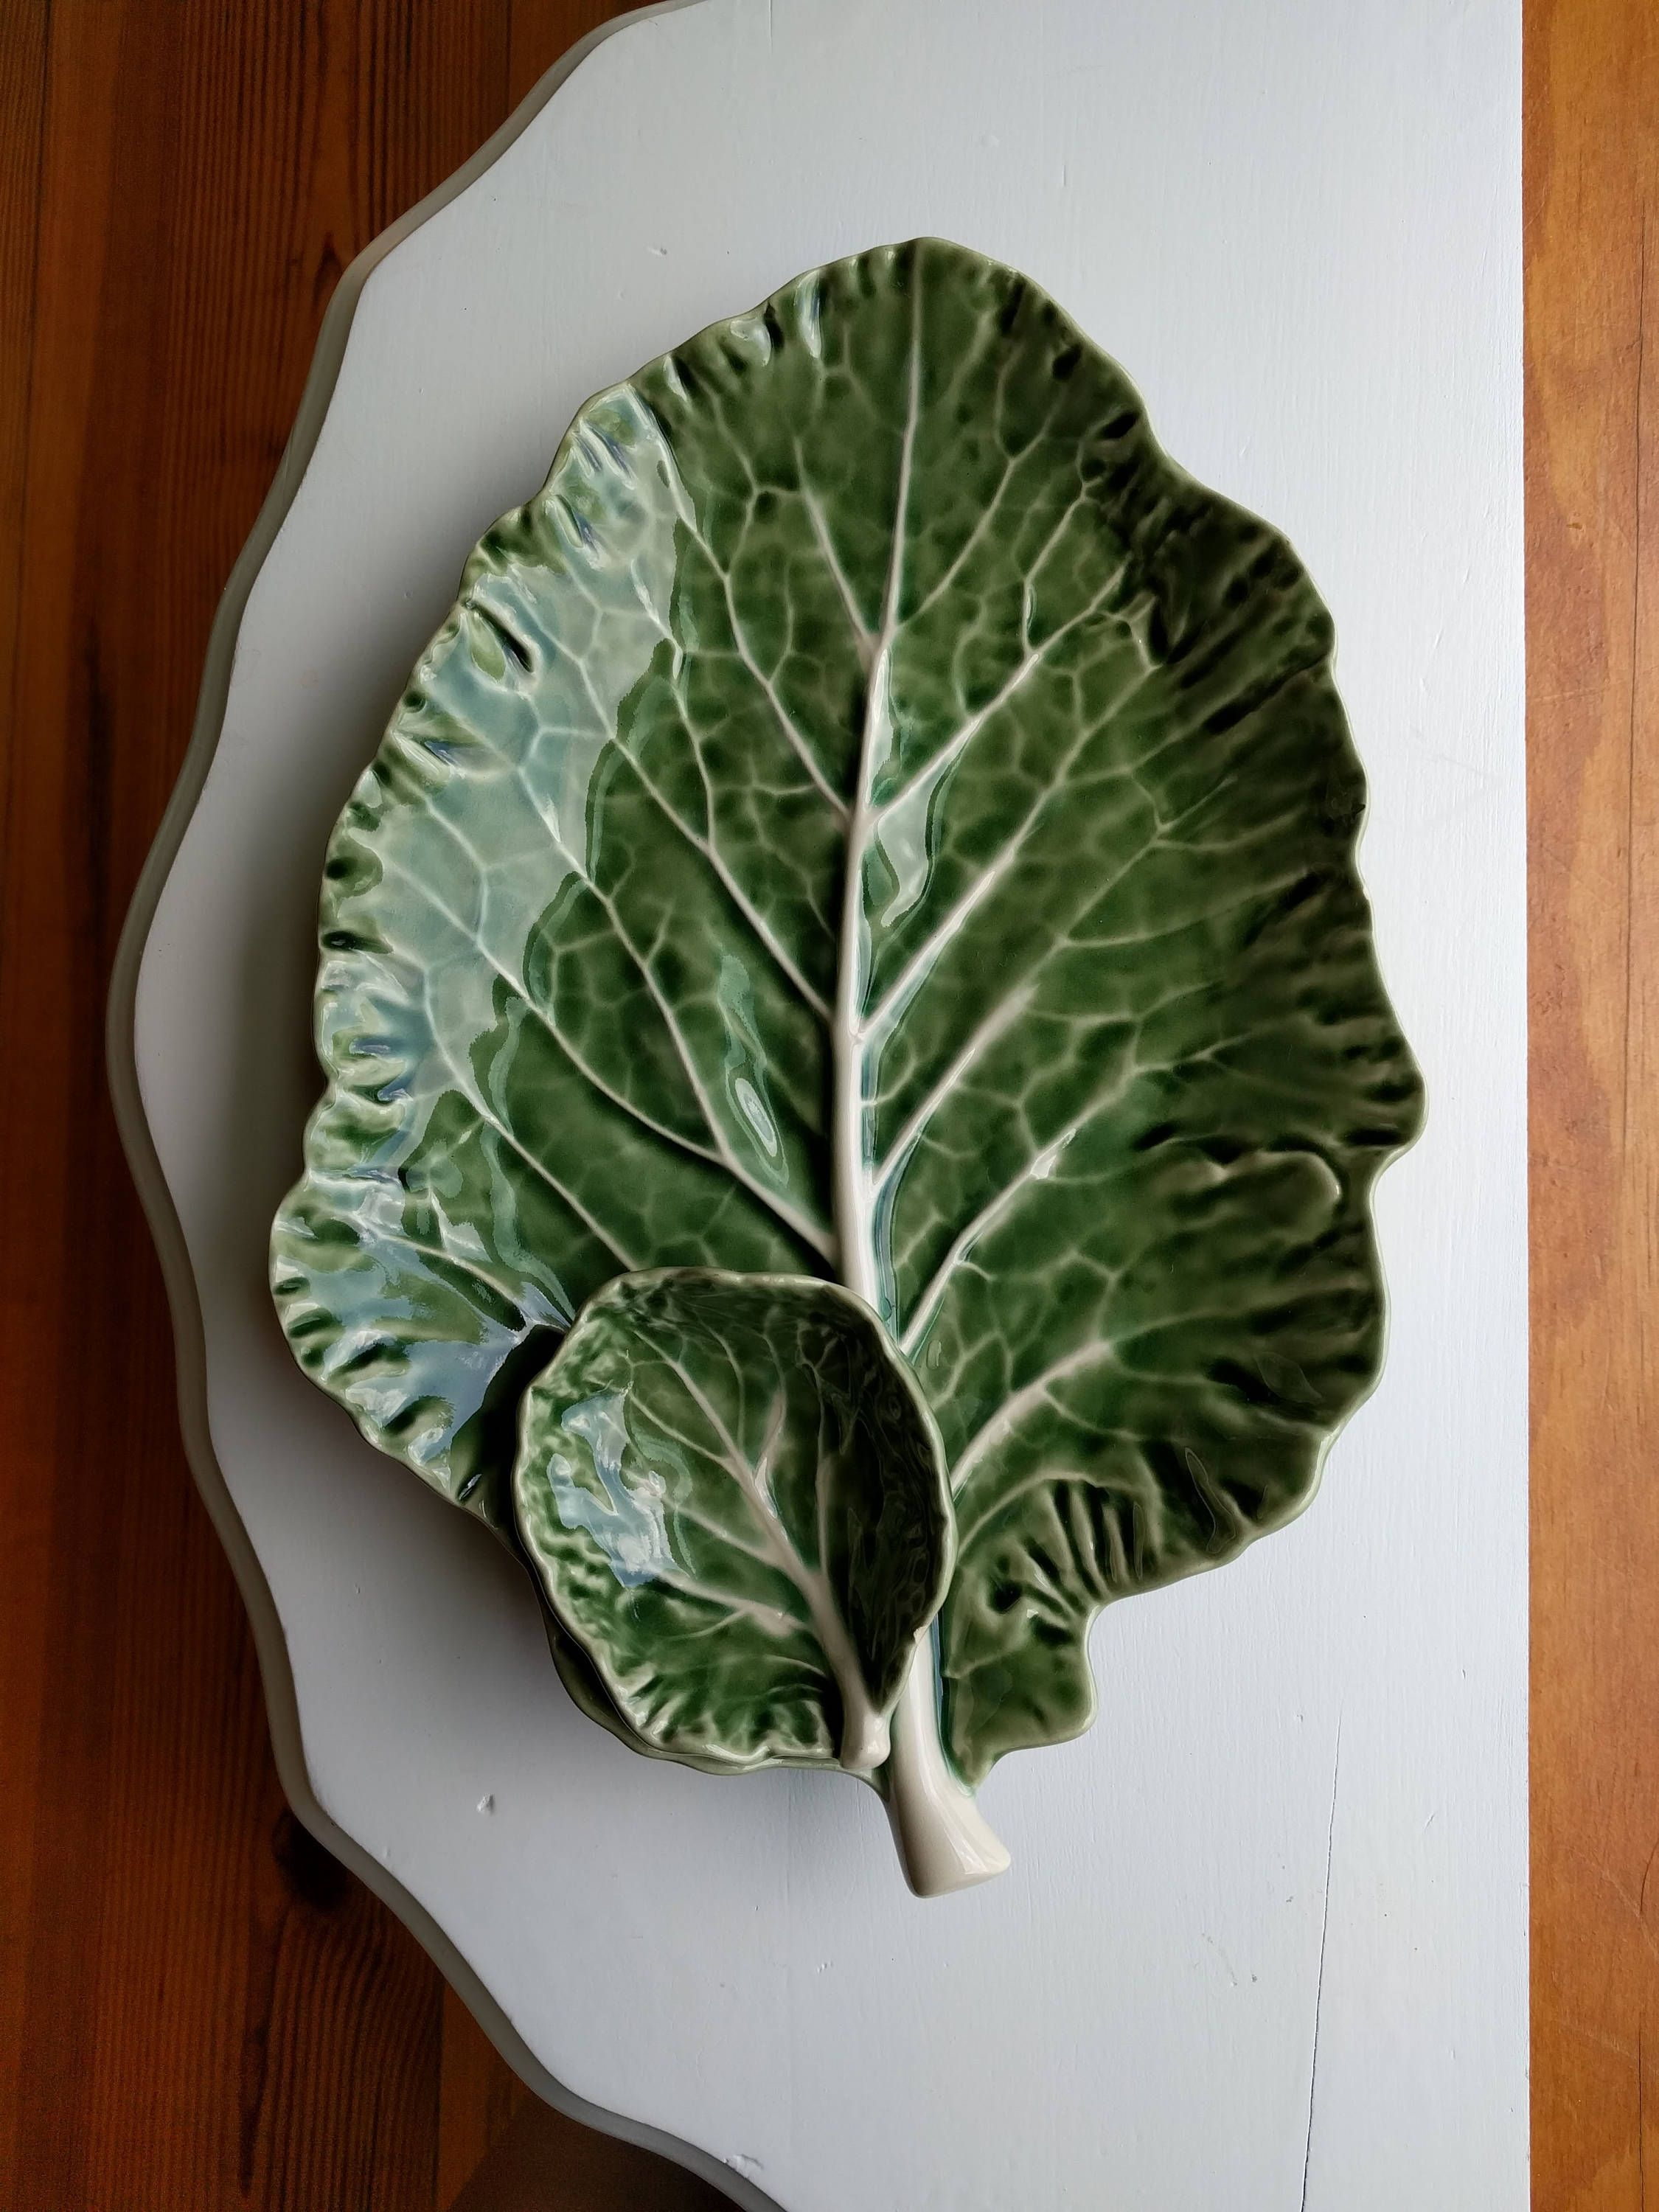 Cabbage Plate,Leaf Plate,Plant Plate,Leaf Dish,Plant Dish,Green Plate,Vegetable Plate,Garden Plate,Texture Plate,Vegetable Dish,Cabbage Dish